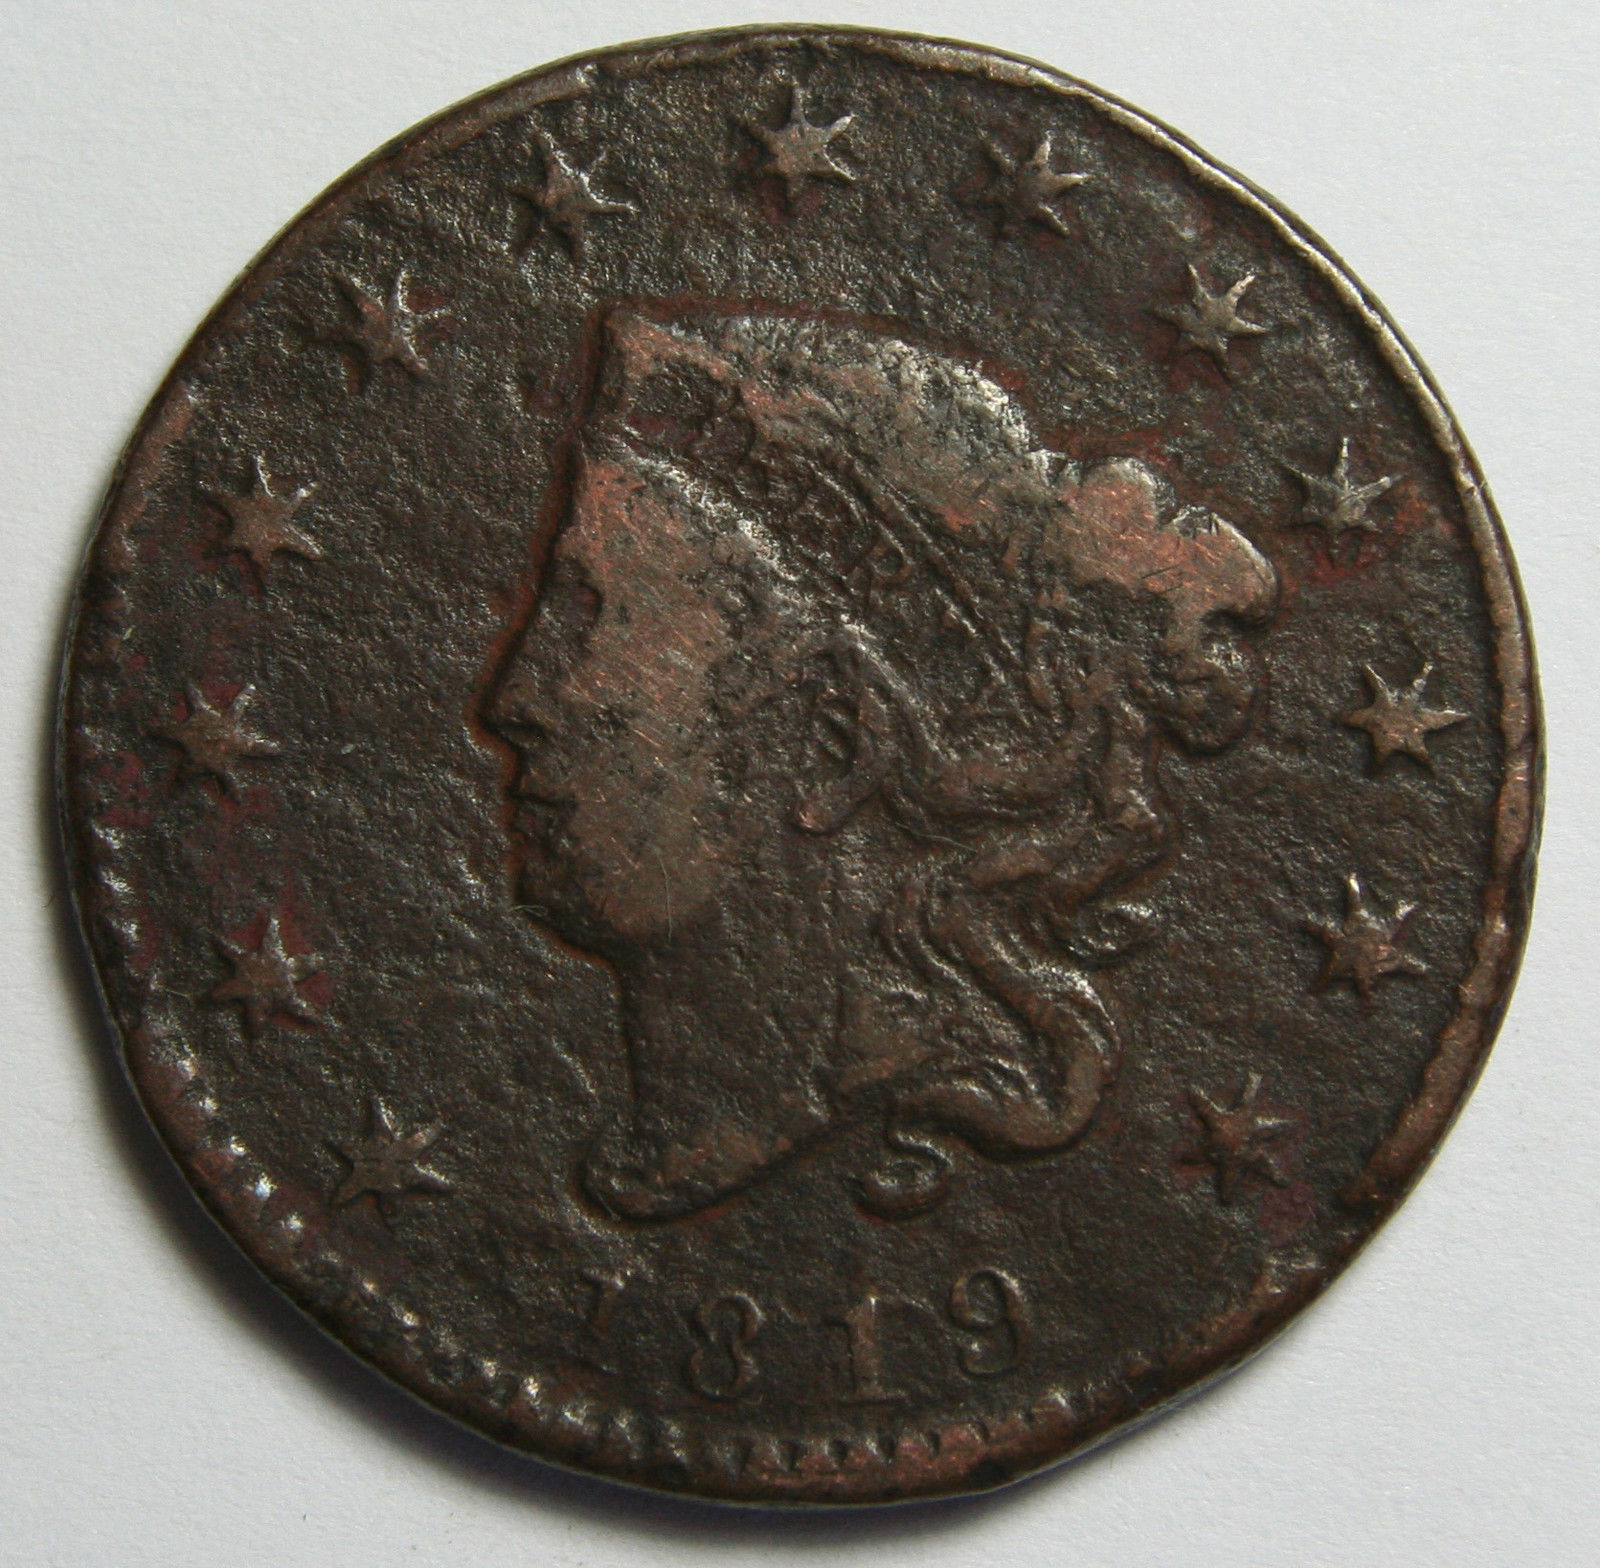 1819 Large Cent Liberty Coronet Head Coin Lot # MZ 4082